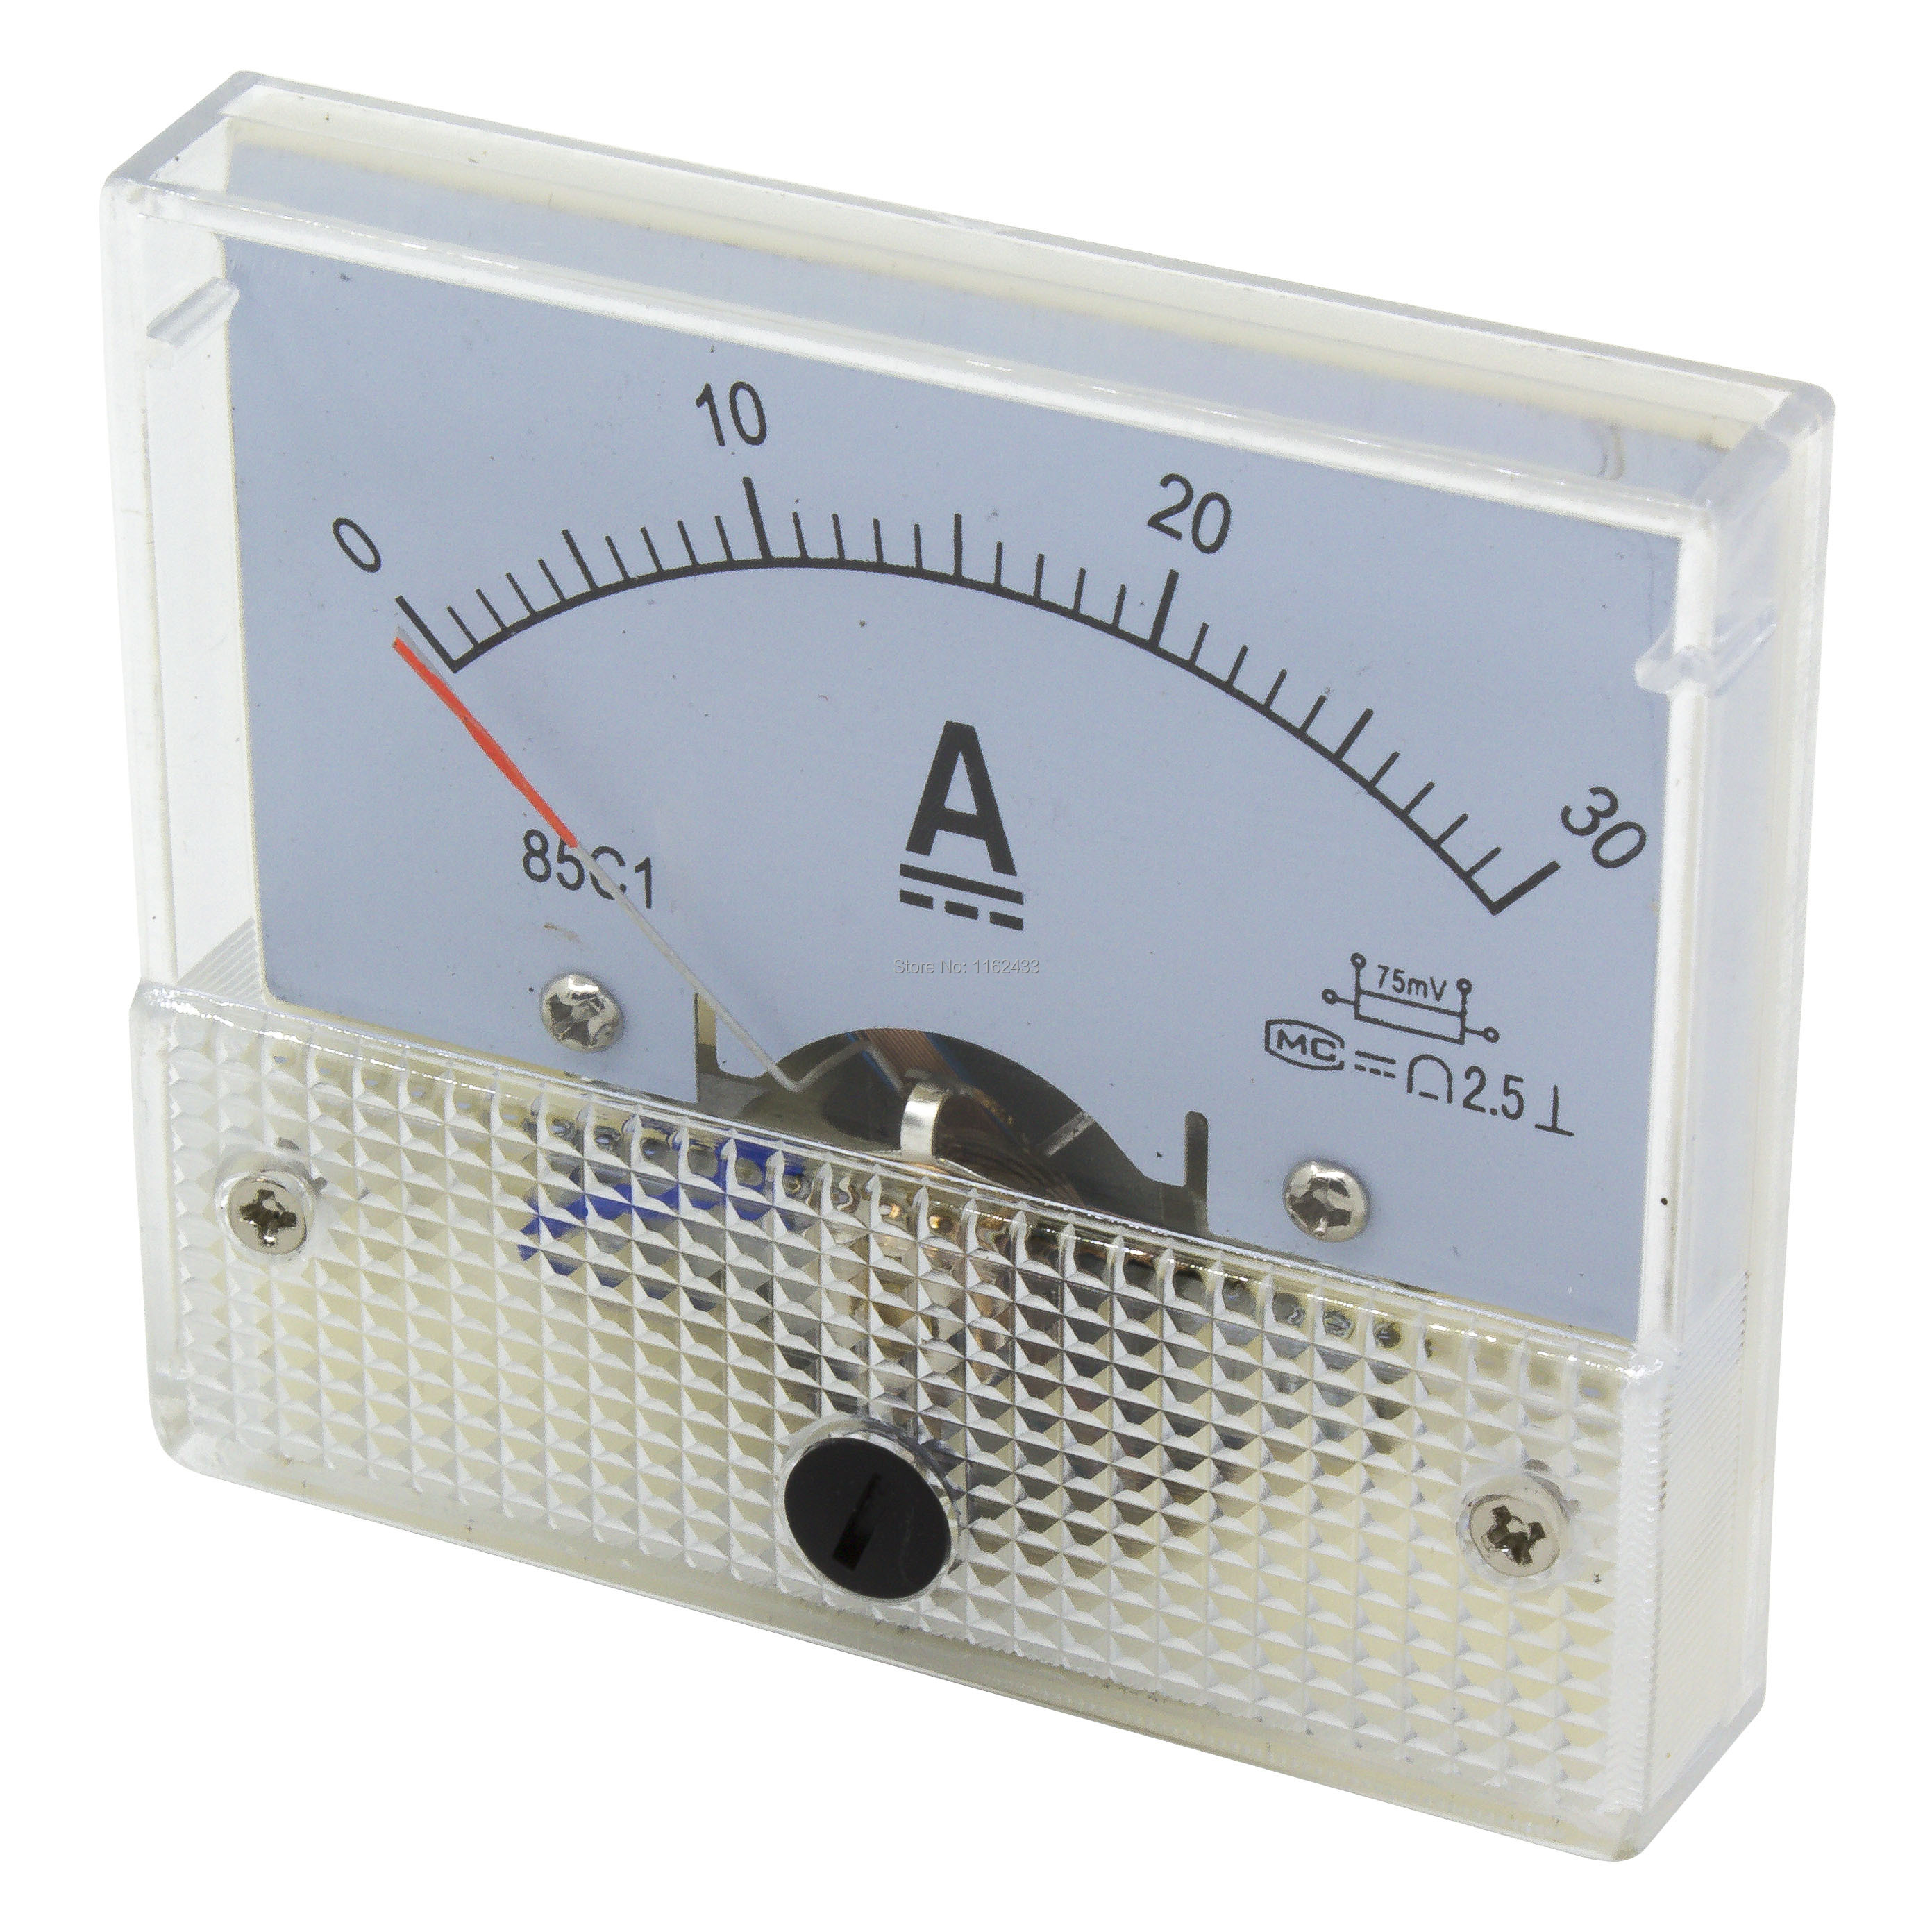 85C1-A DC pointer ammeter current meter 15A 20A 30A 50A 75A 100A 150A 200A 300A need shunt 85C1 analog AMP meter 64*56 mm size